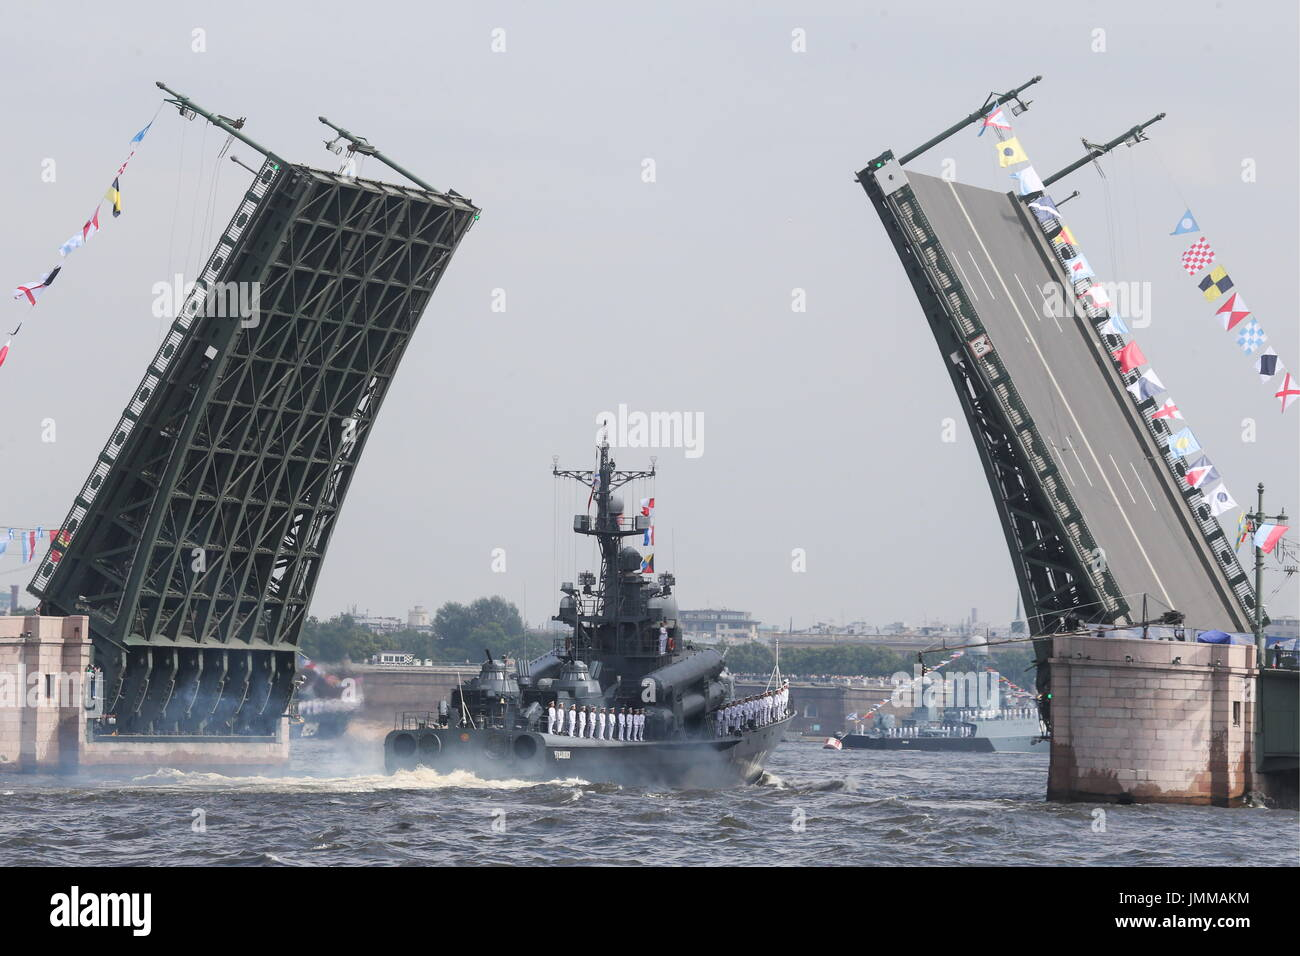 St Petersburg, Russia. 28th July, 2017. The Chuvashia missile boat takes part in a rehearsal of the upcoming Russian Stock Photo